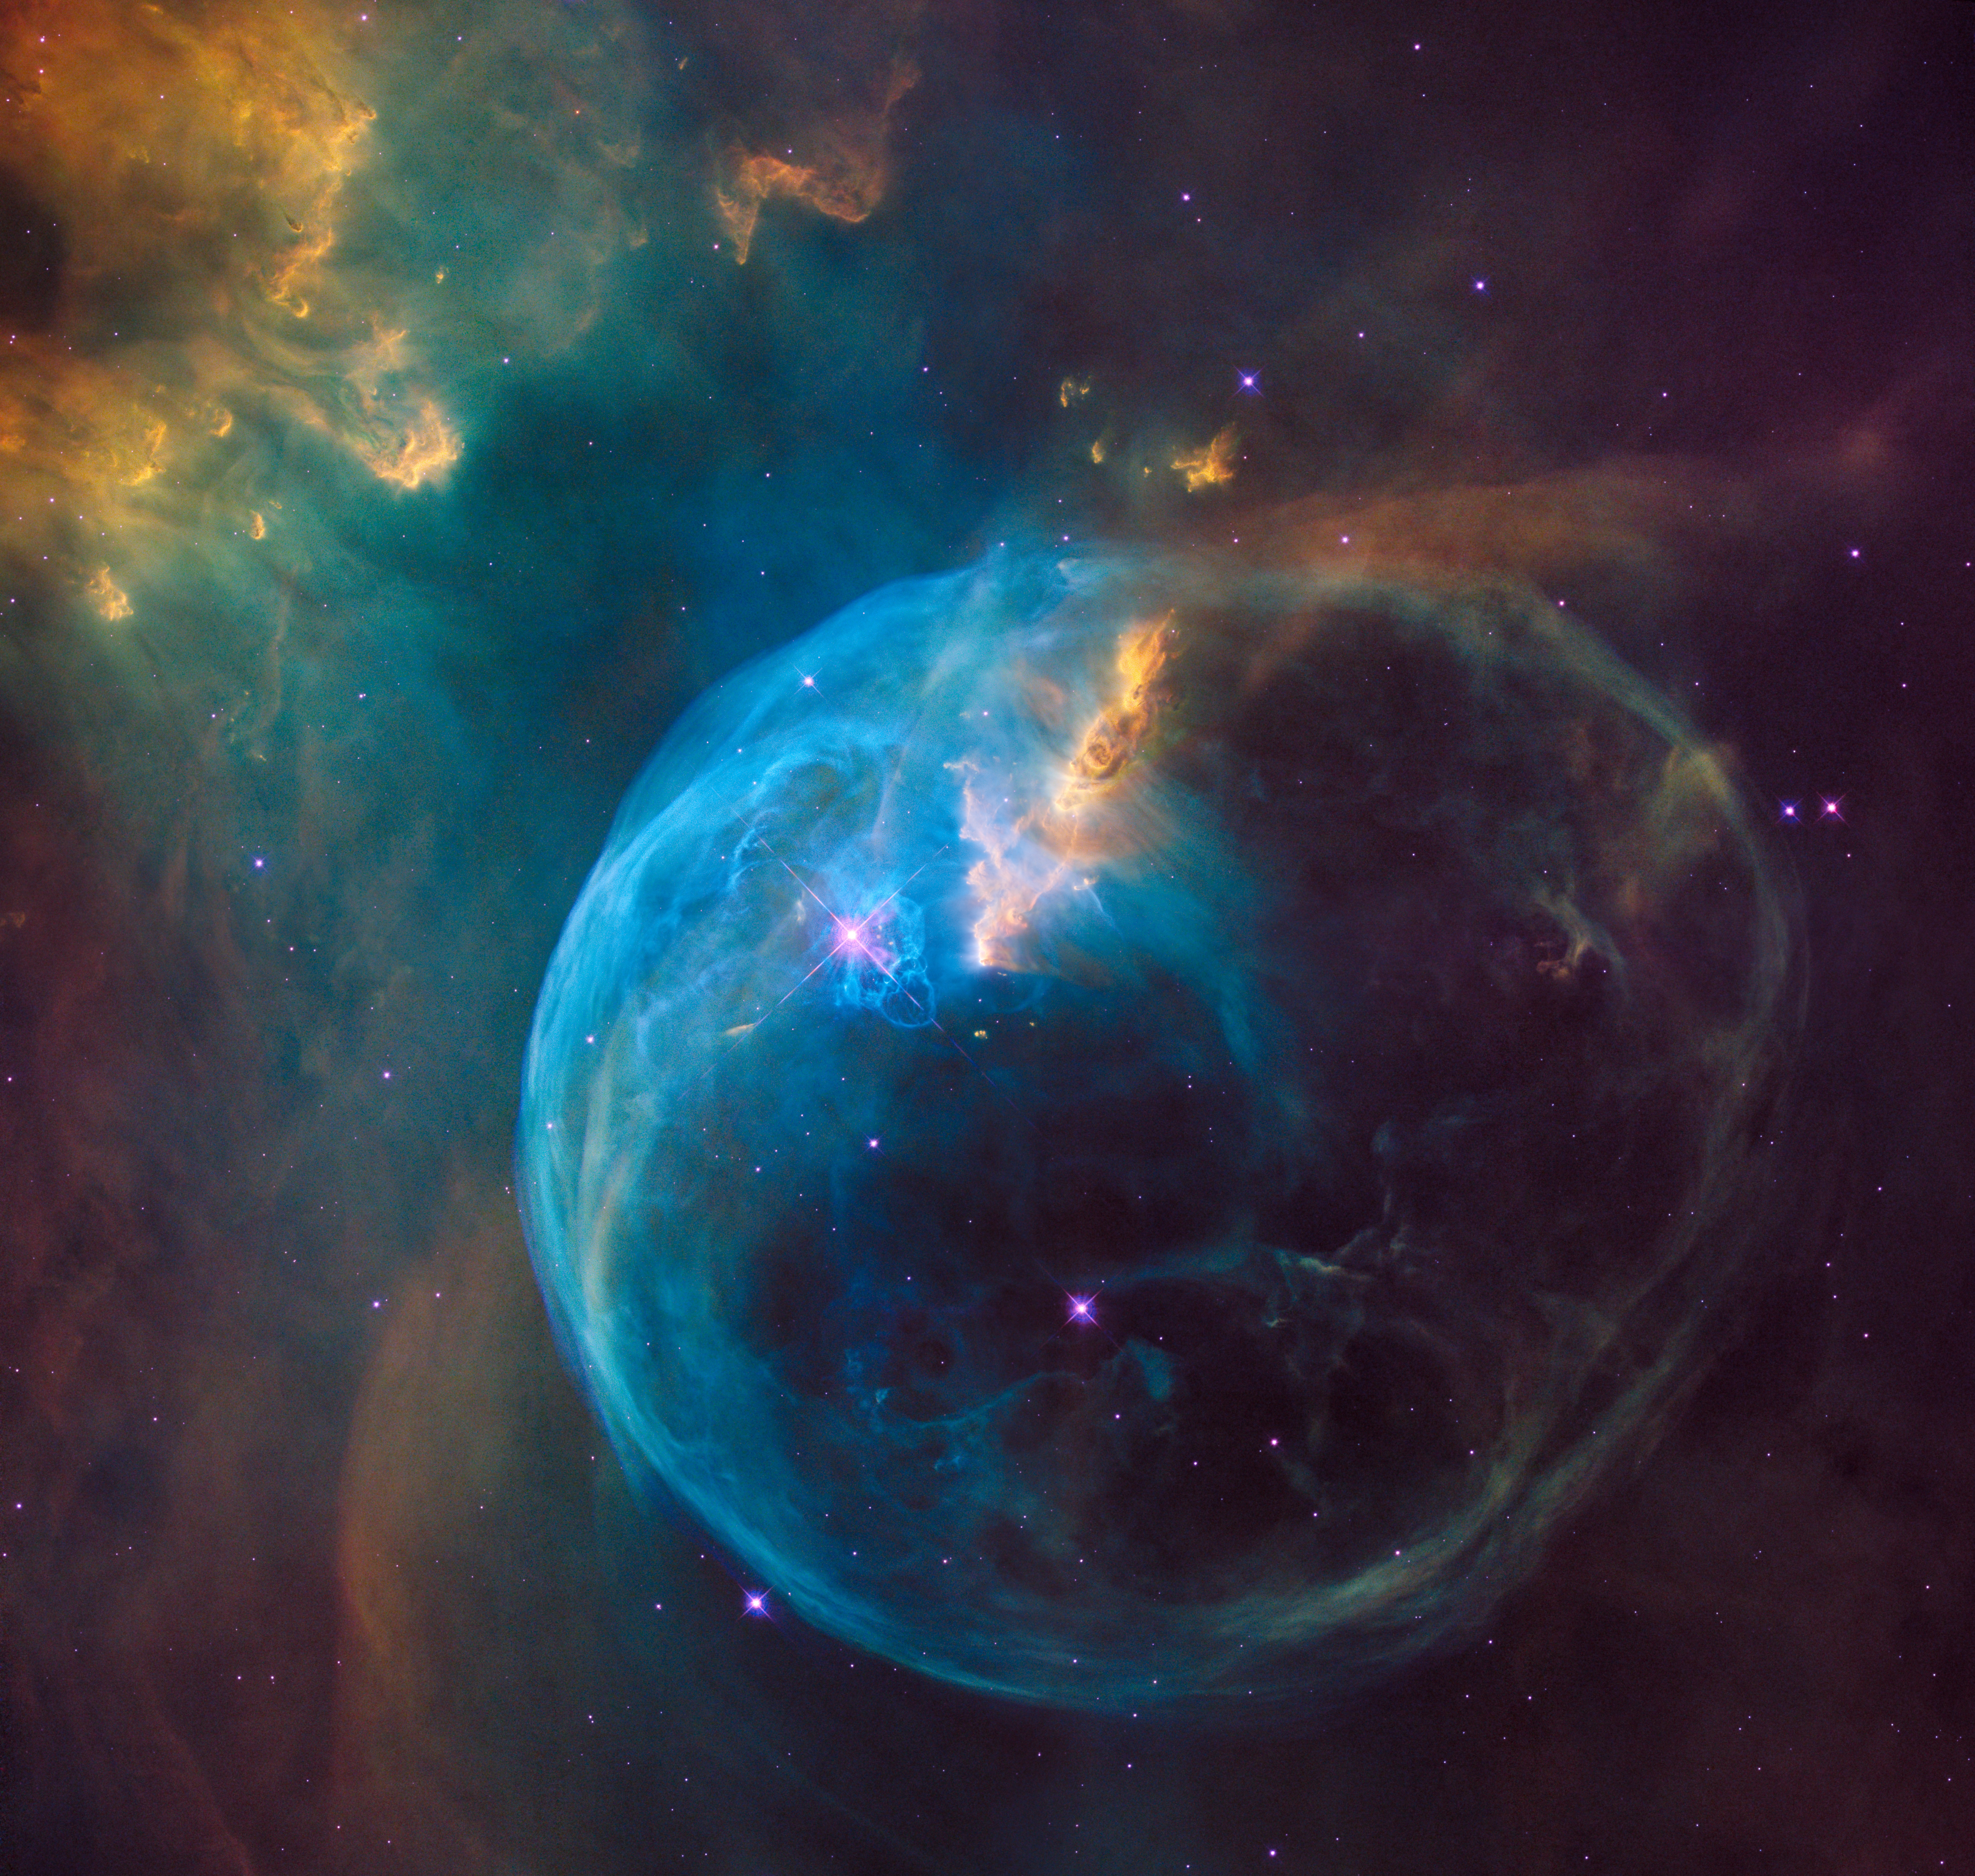 Image of the Bubble Nebula, Three Line Tale prompt for flash fiction